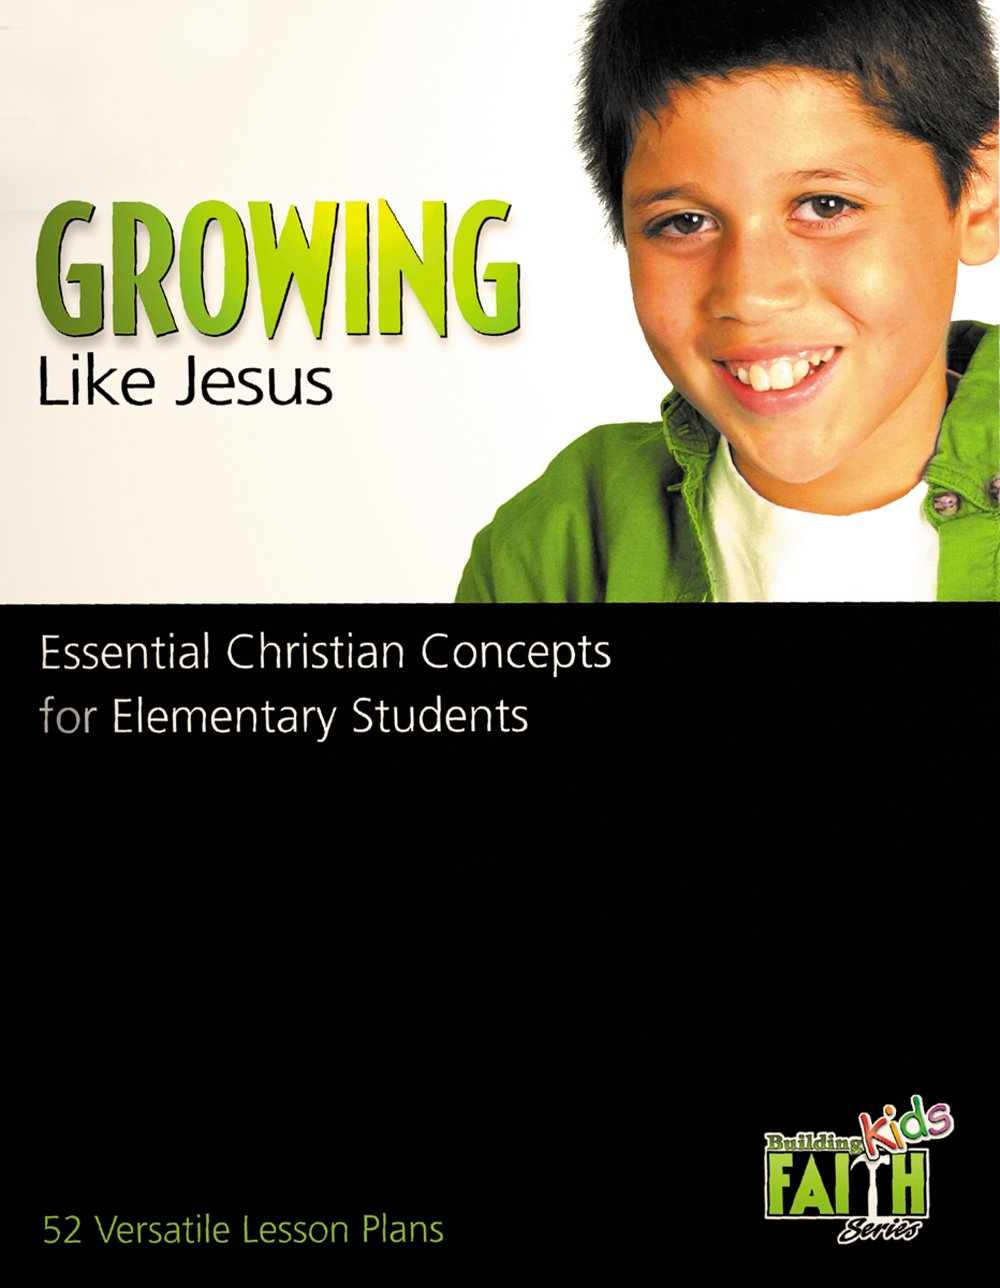 Growing Like Jesus: Essential Christian Concepts for Elementary Students (Building Faith Kids)